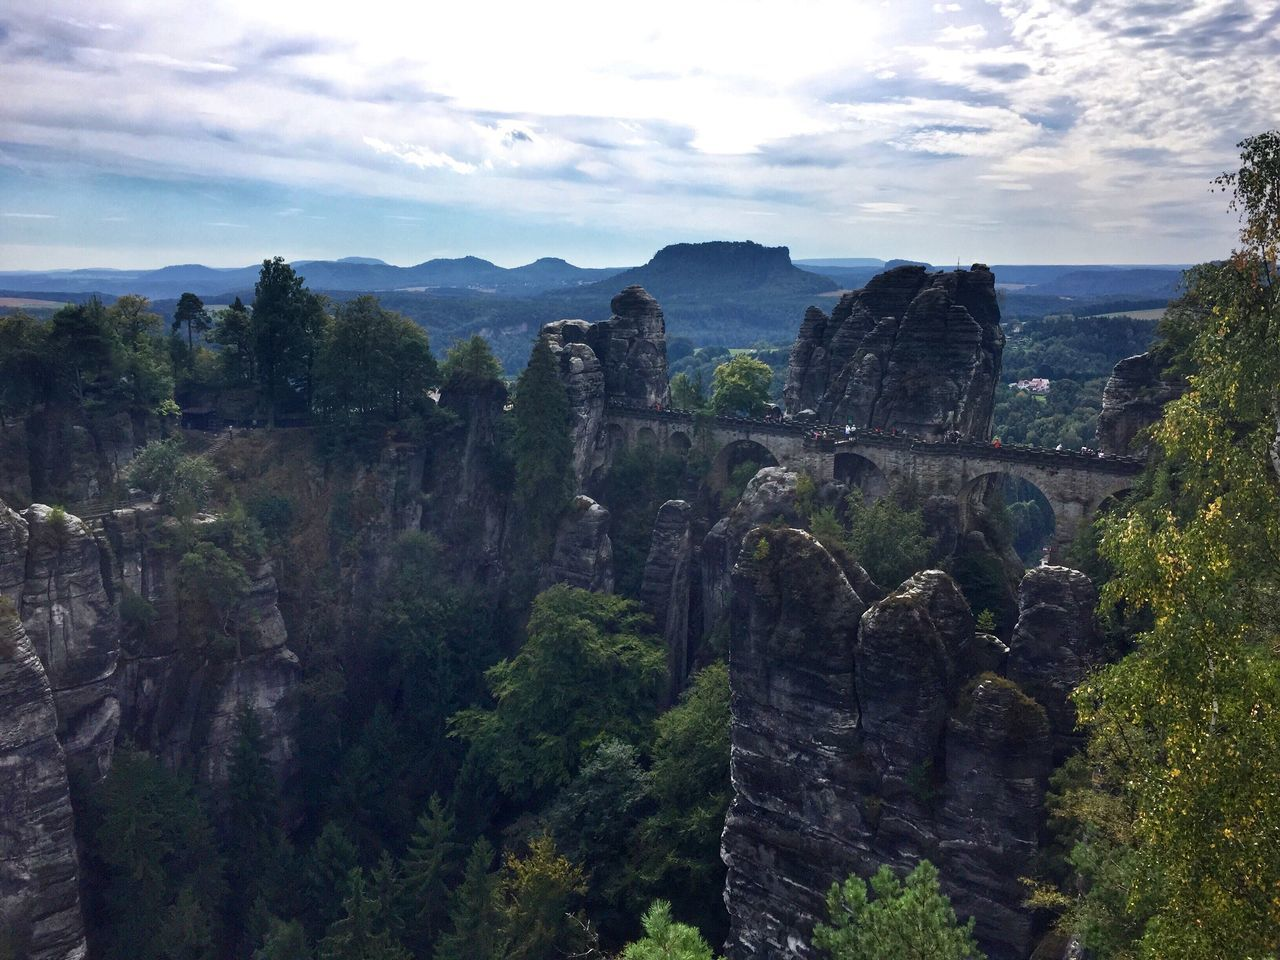 Basteibrücke Basteibrücke Bastei Elbsandsteingebirge Sächsische Schweiz Saxon Switzerland Germany Travel Photography Traveling Travel EyeEm Nature Lover Nature Rock Formation Mountain Bridge Naturelovers